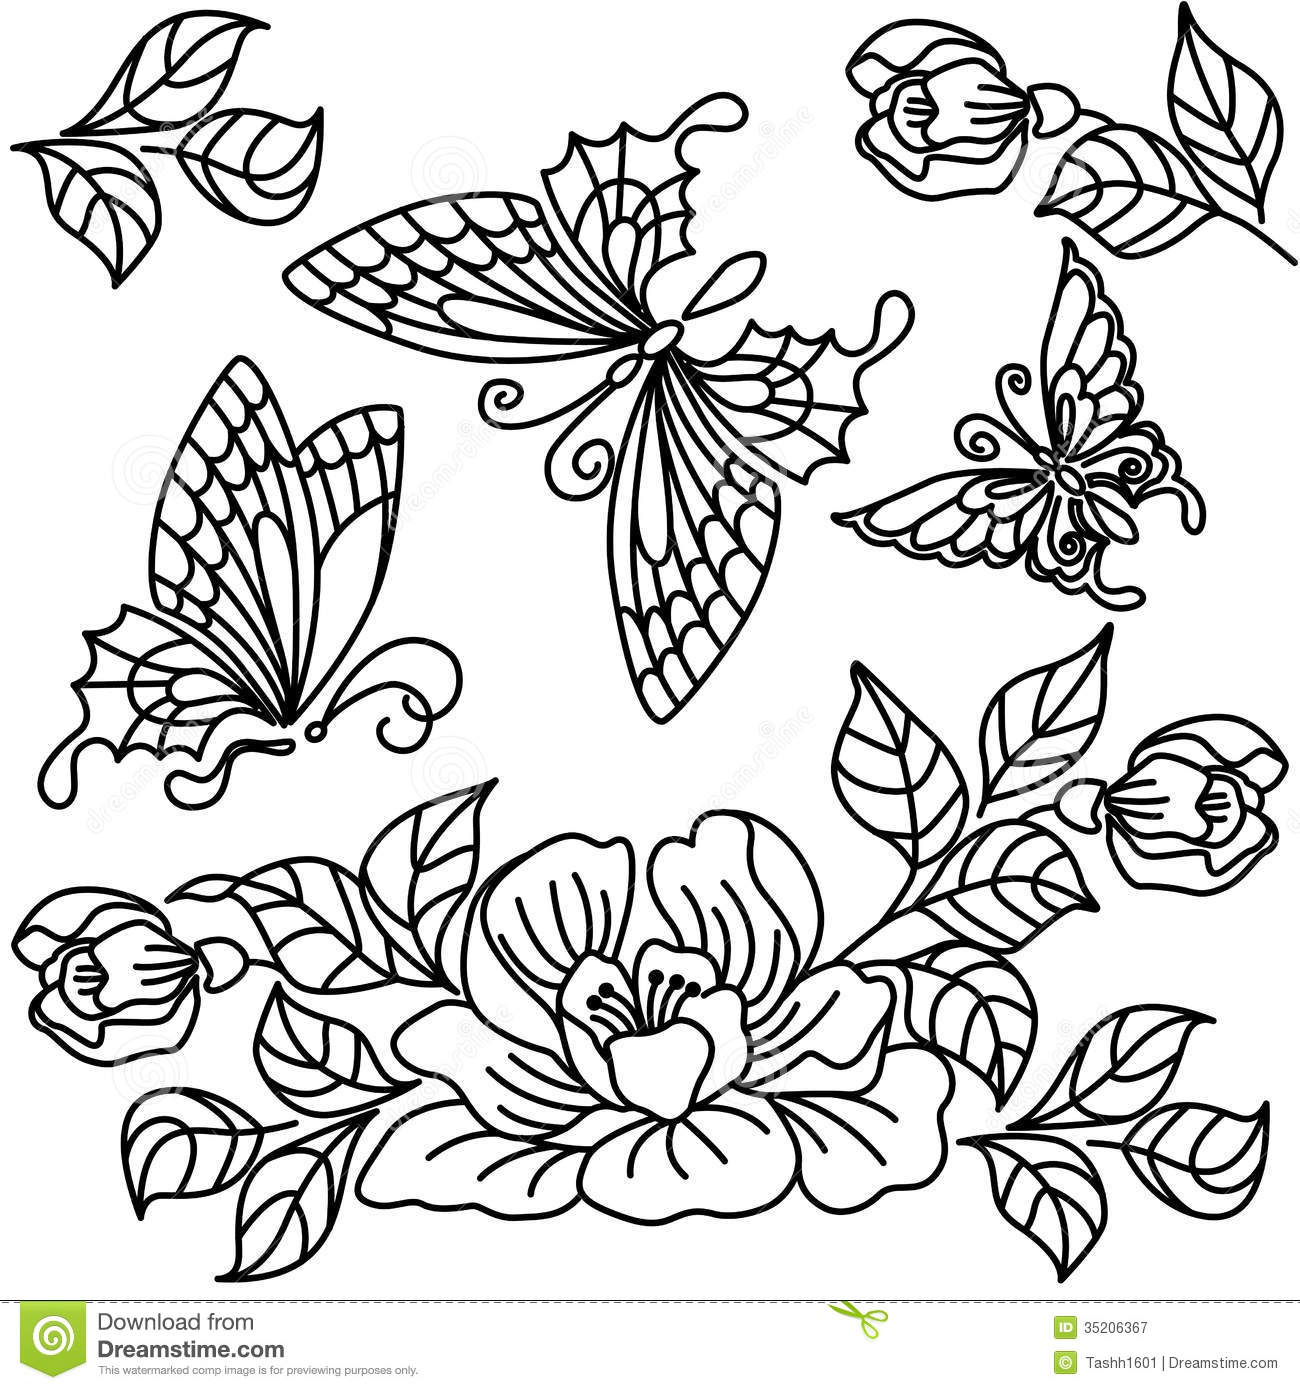 Flowers and butterfly stock illustration illustration of flowers download flowers and butterfly stock illustration illustration of flowers 35206367 mightylinksfo